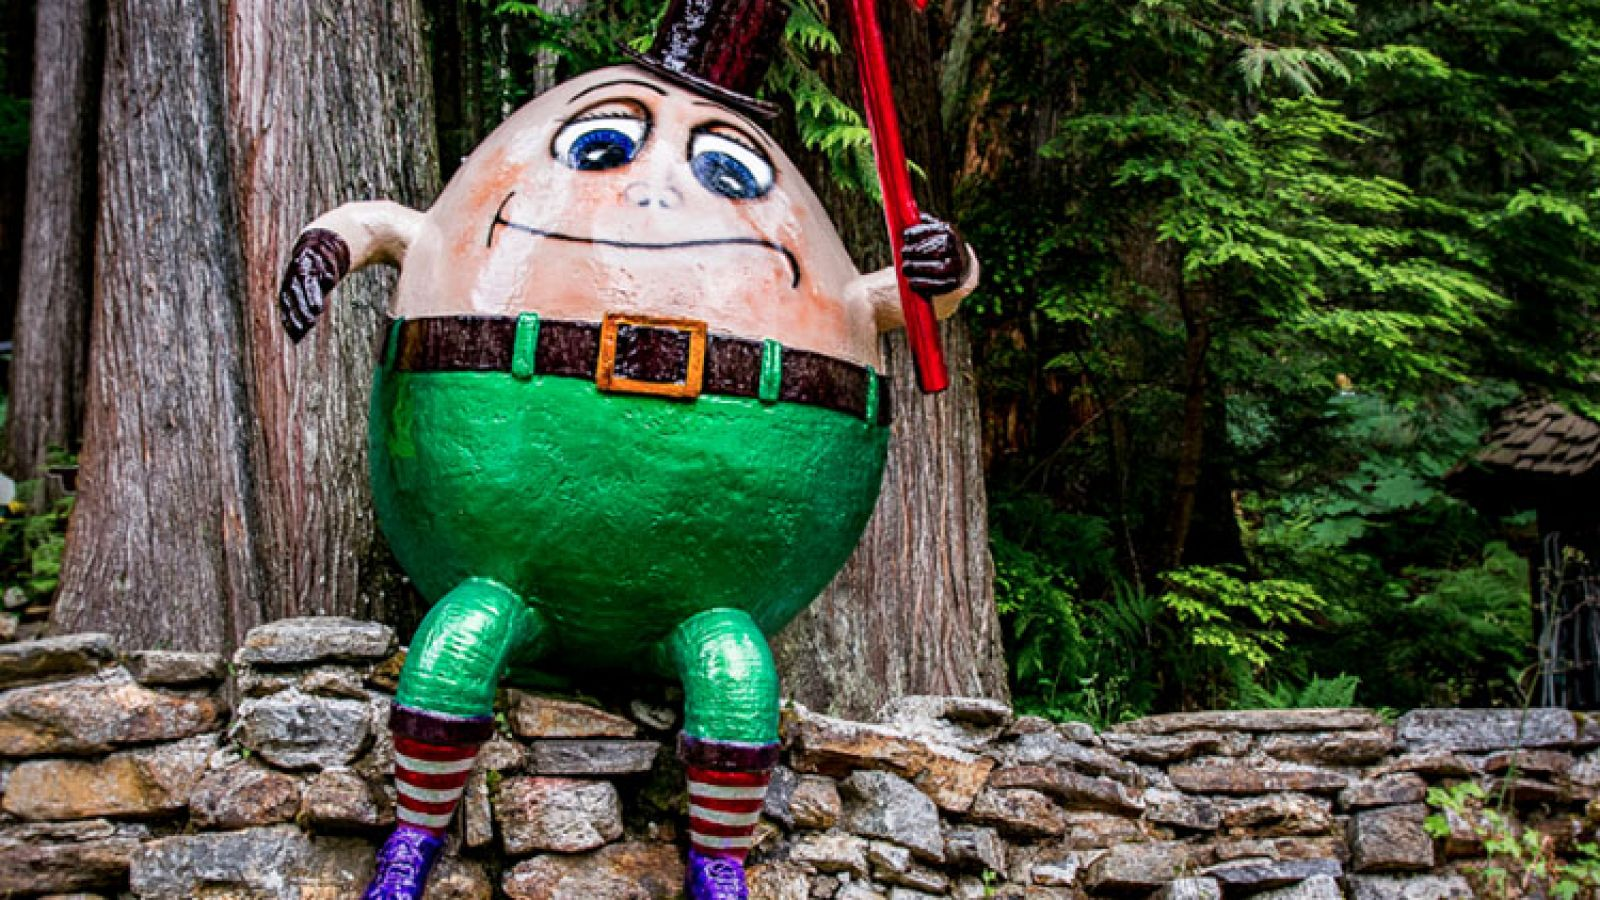 Humpty Dumpty welcomes you.